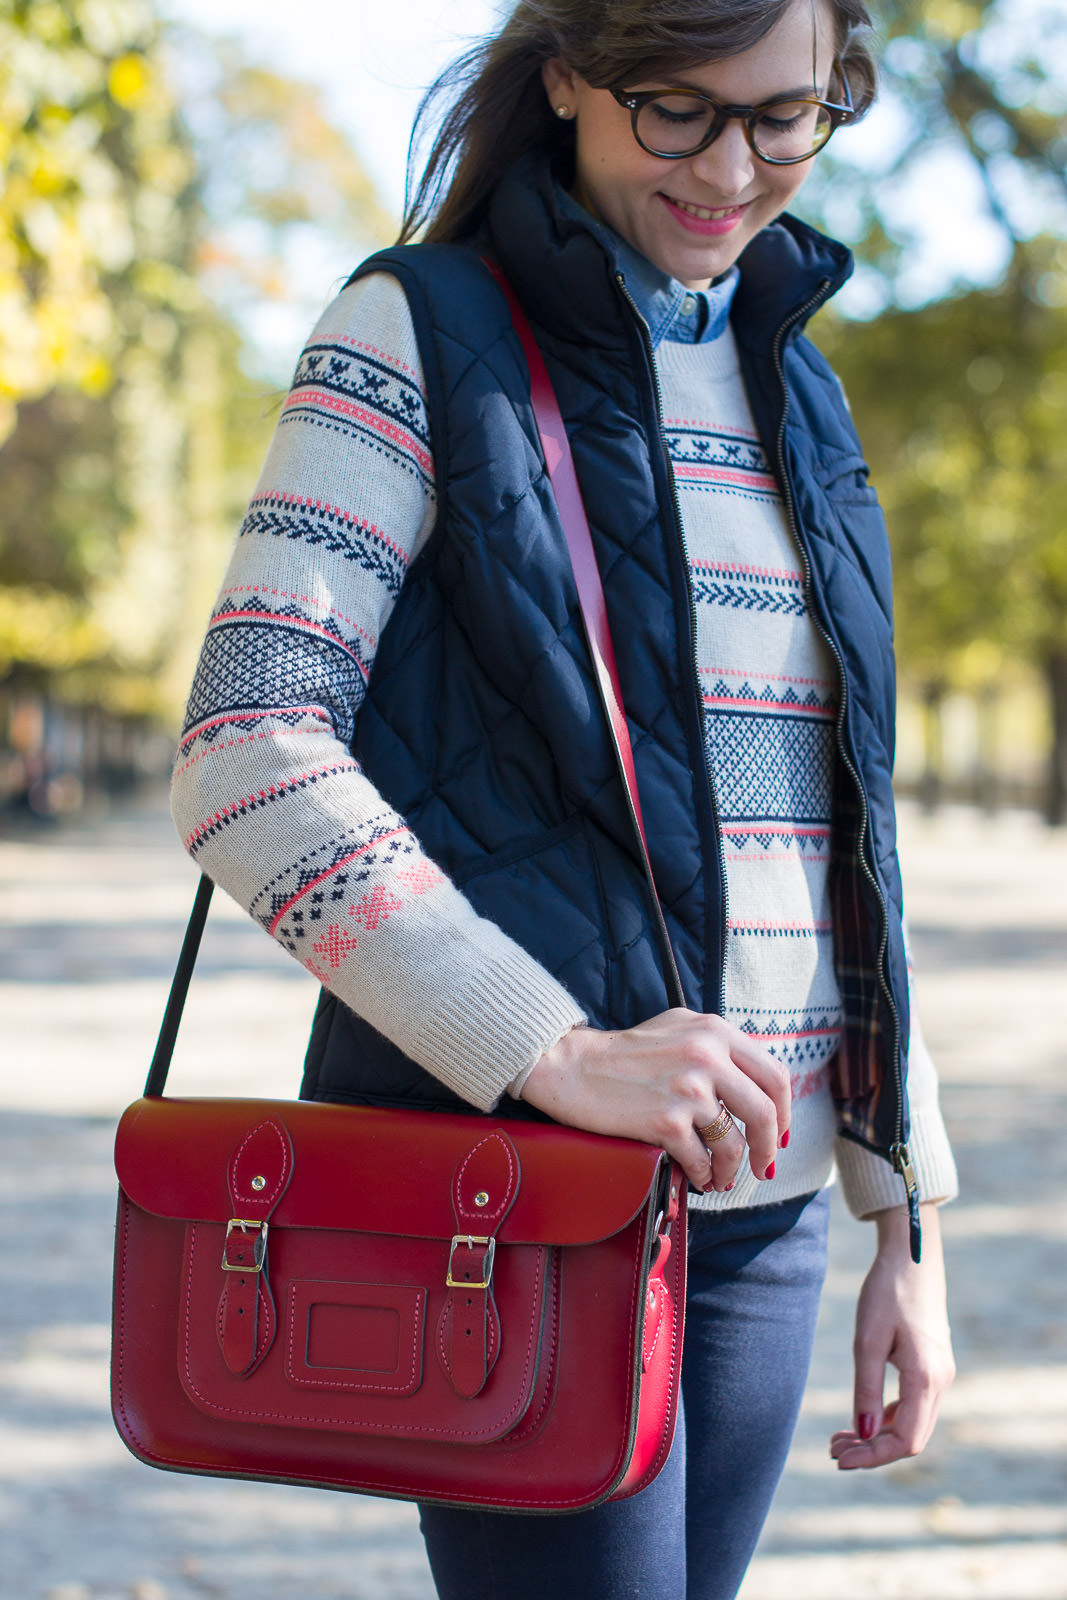 Blog-Mode-And-The-City-looks-saison-jacquard-jcrew